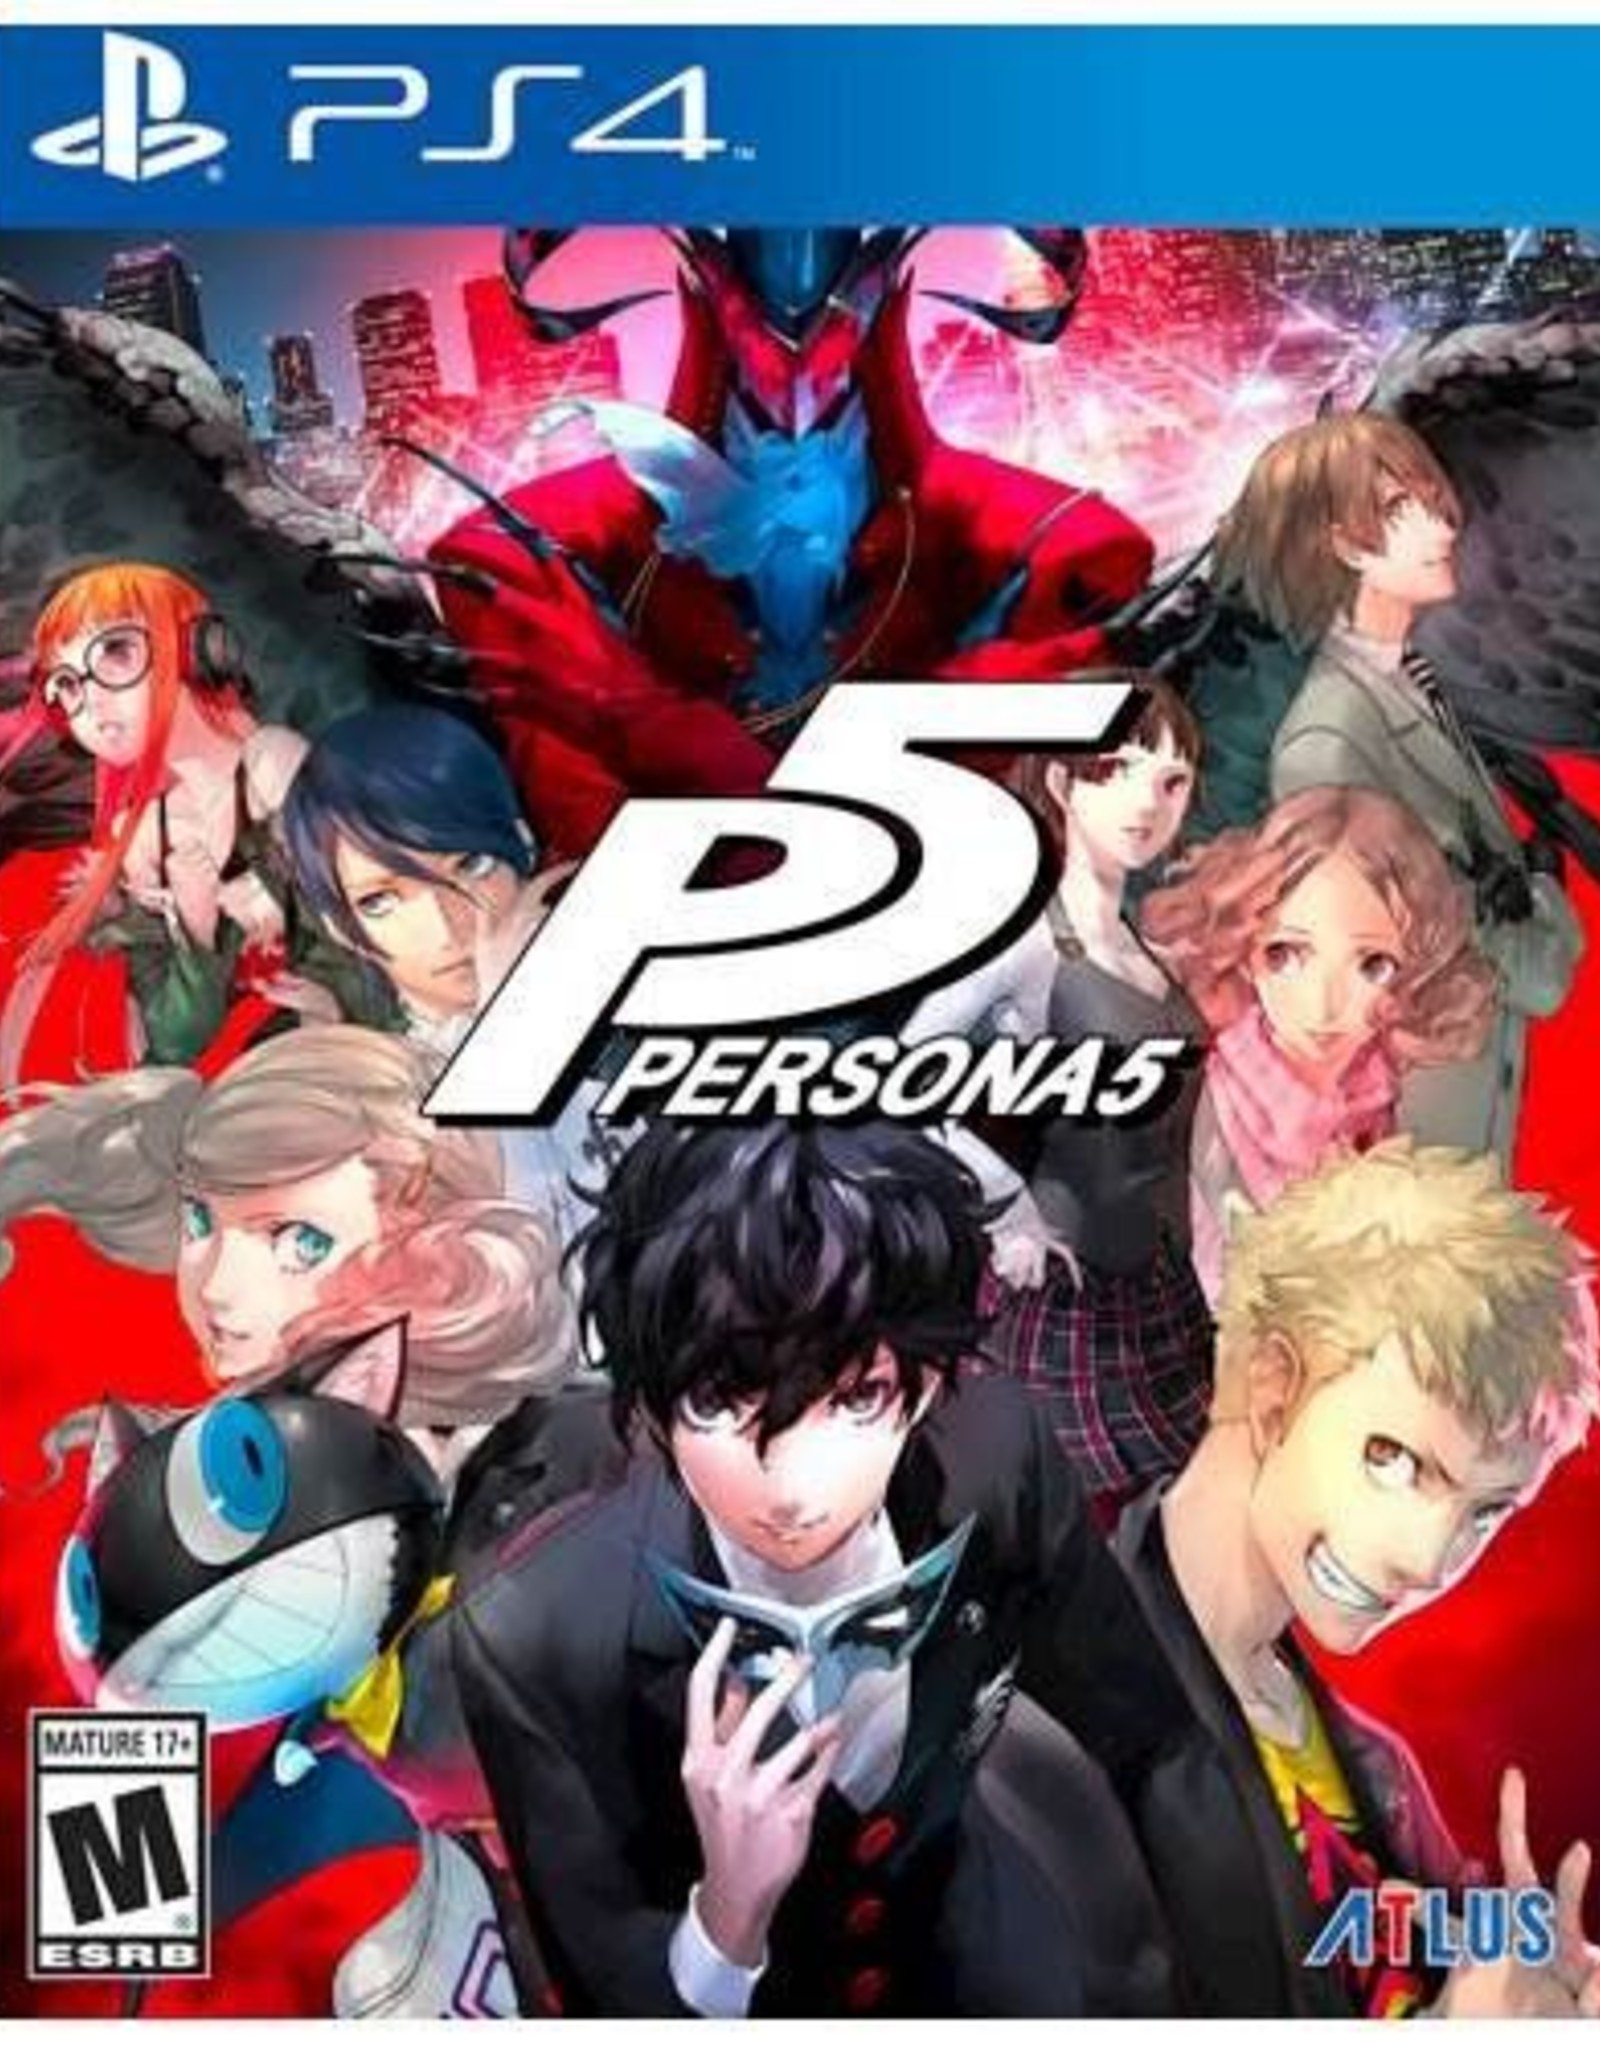 Persona 5 - PS4 DIGITAL